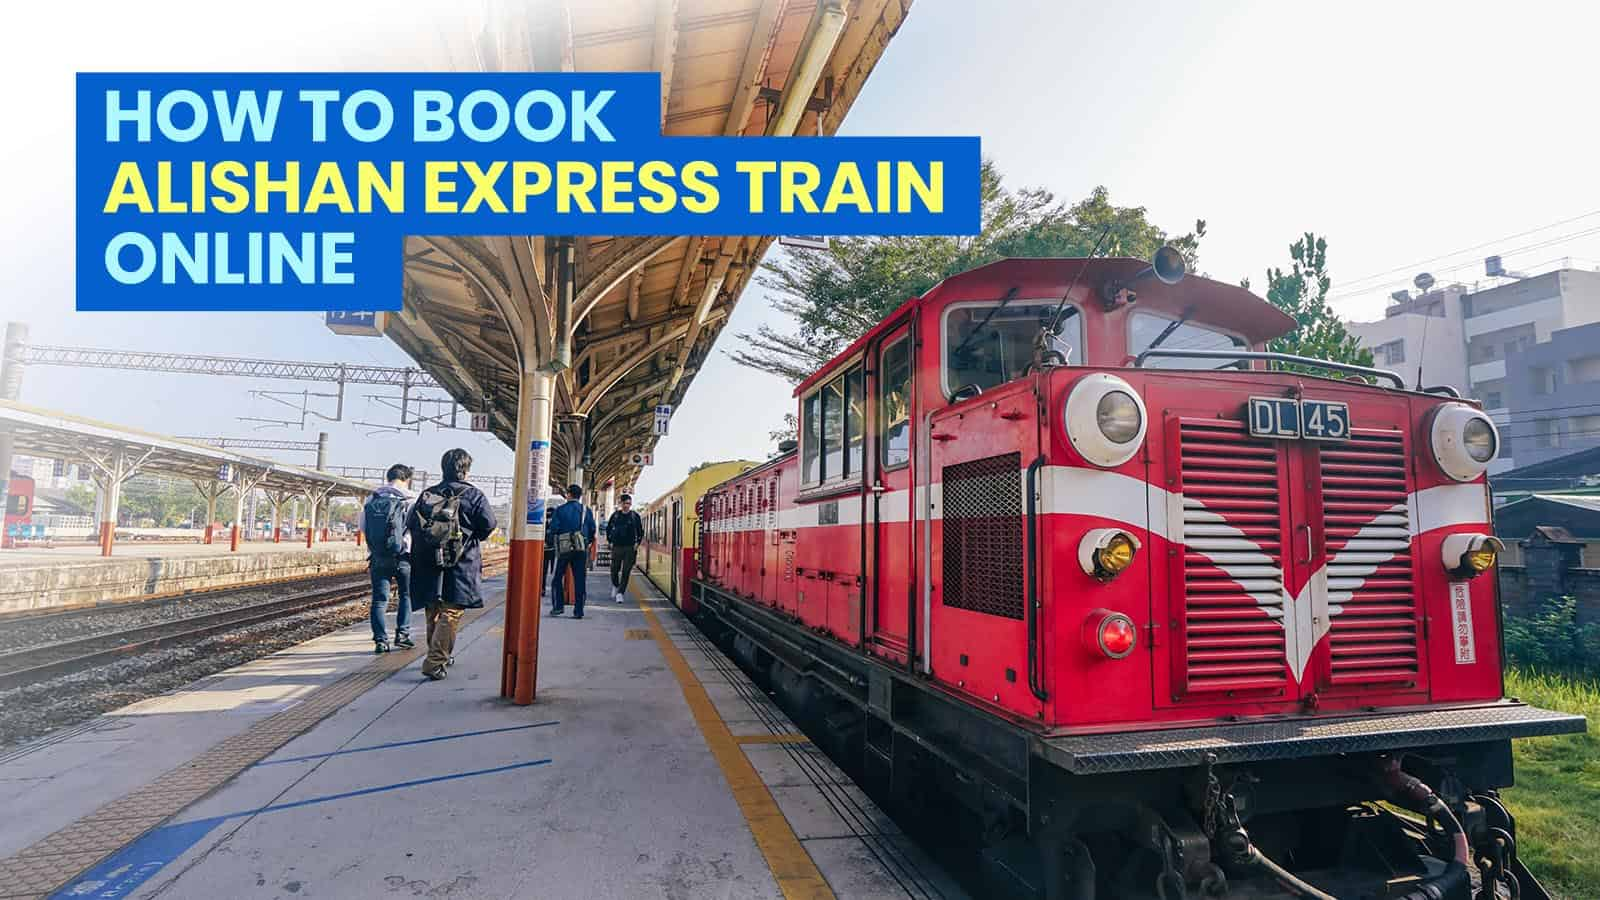 How to Book ALISHAN EXPRESS TRAIN TICKETS Online (Alishan Forest Railway)